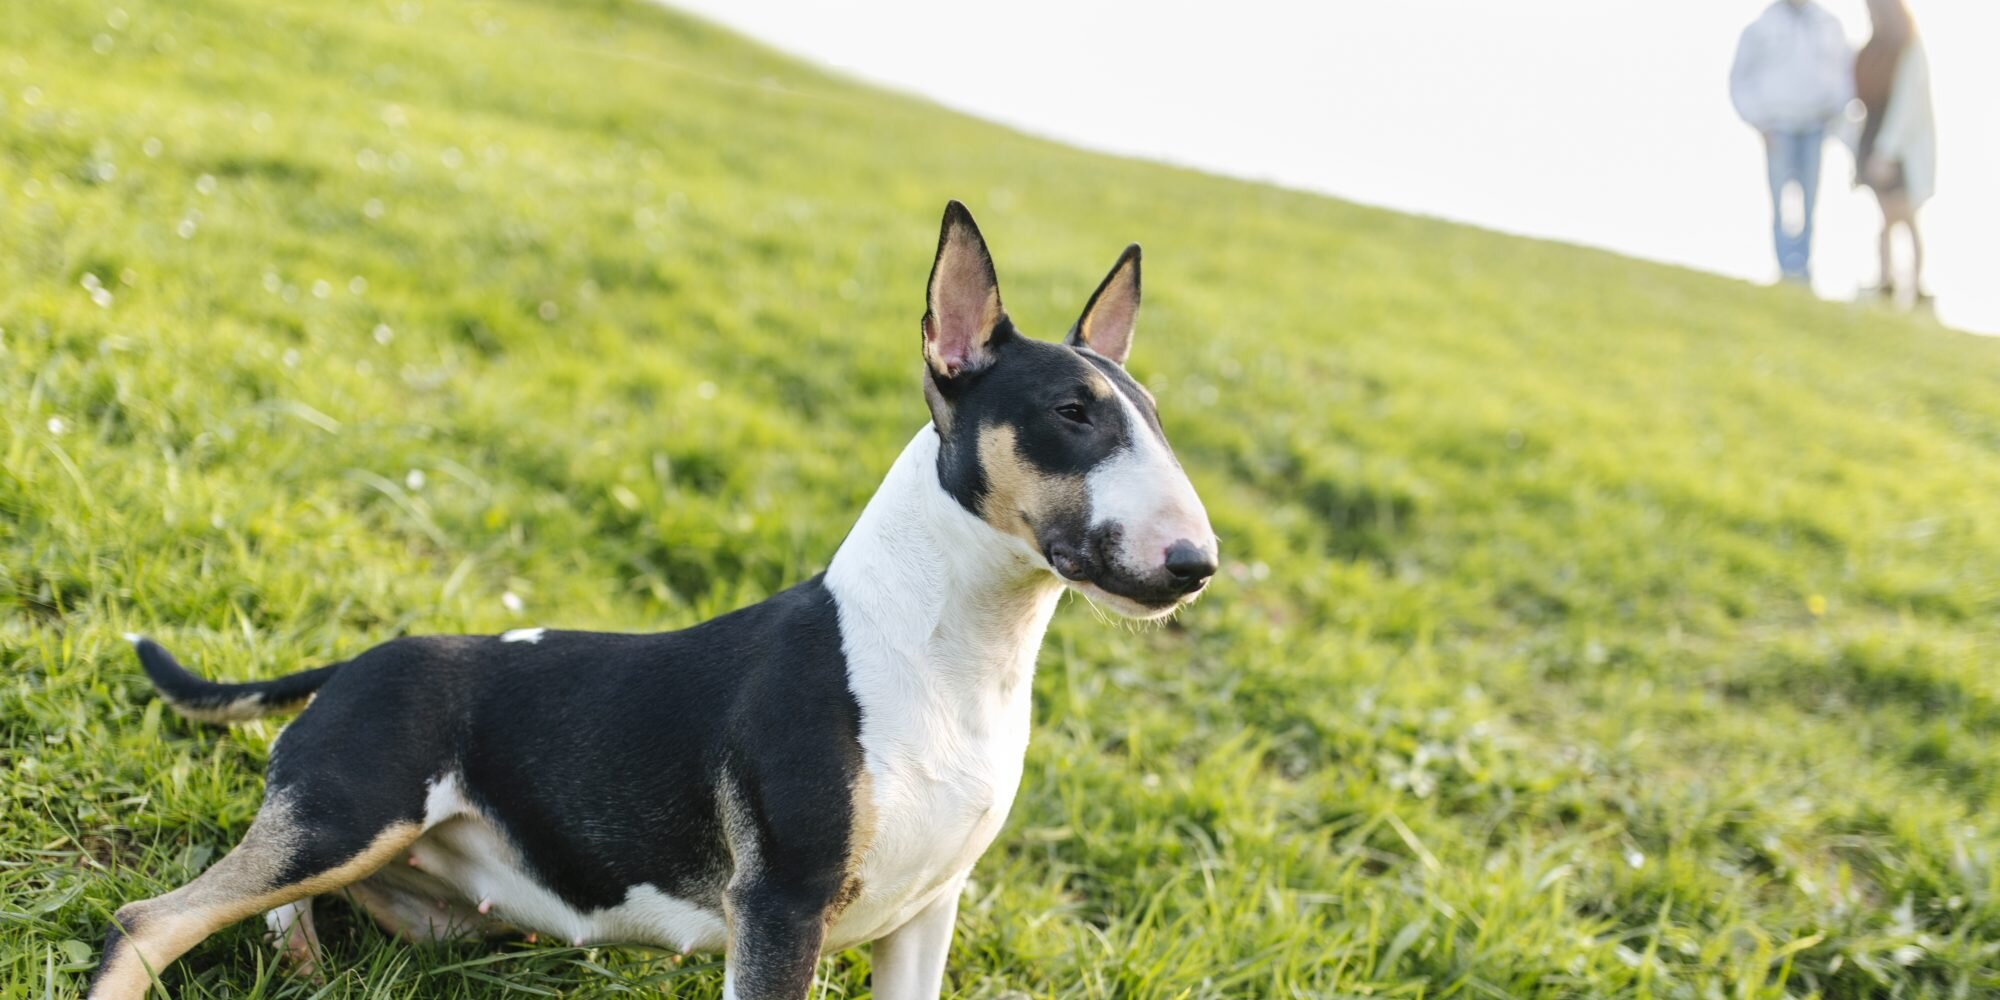 Trancing: What Is It and Why Does Your Dog Do It?